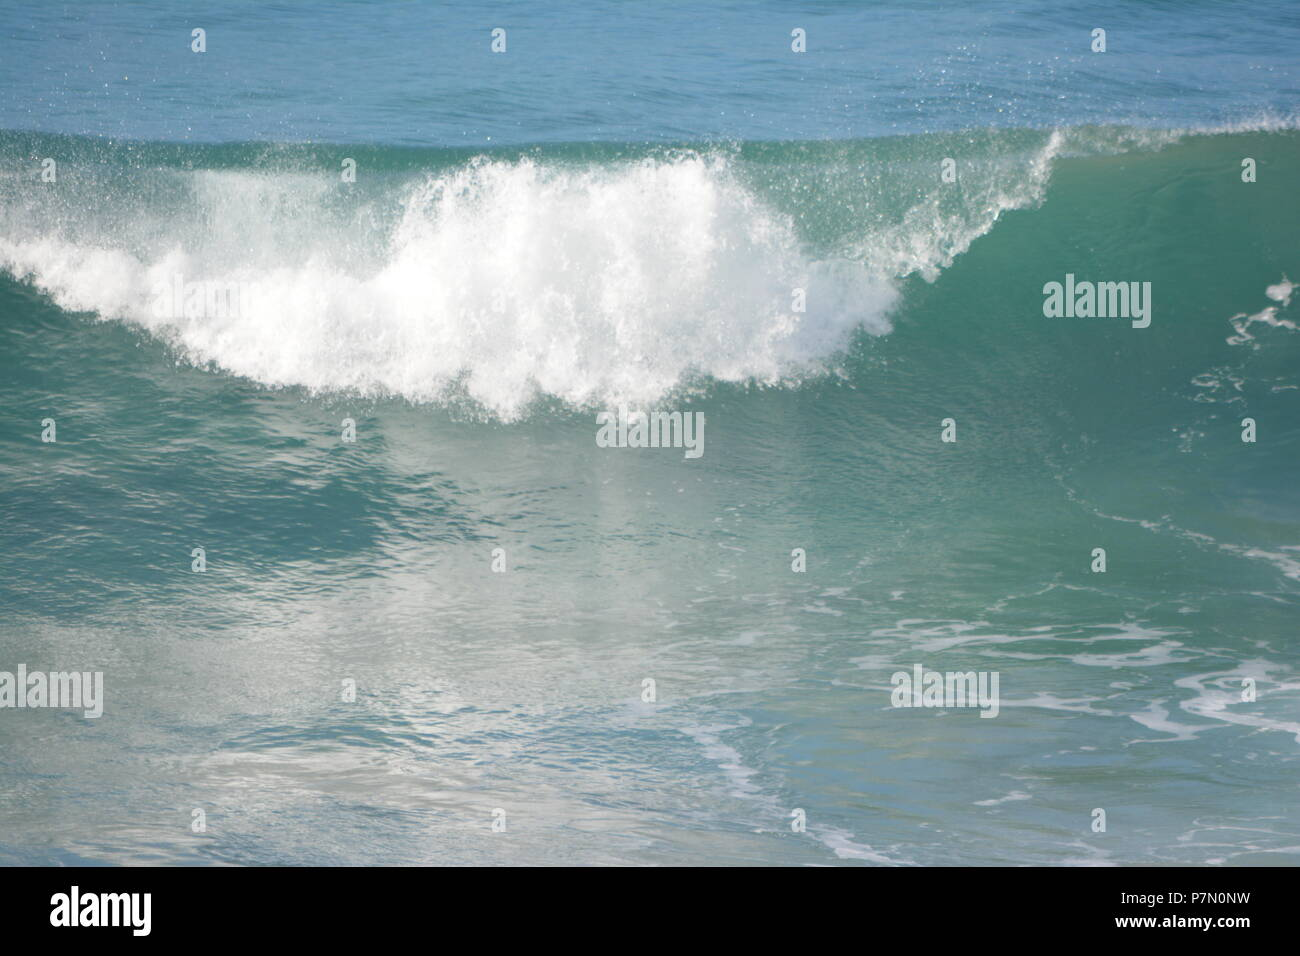 Crashing waves reflecting in water - Stock Image